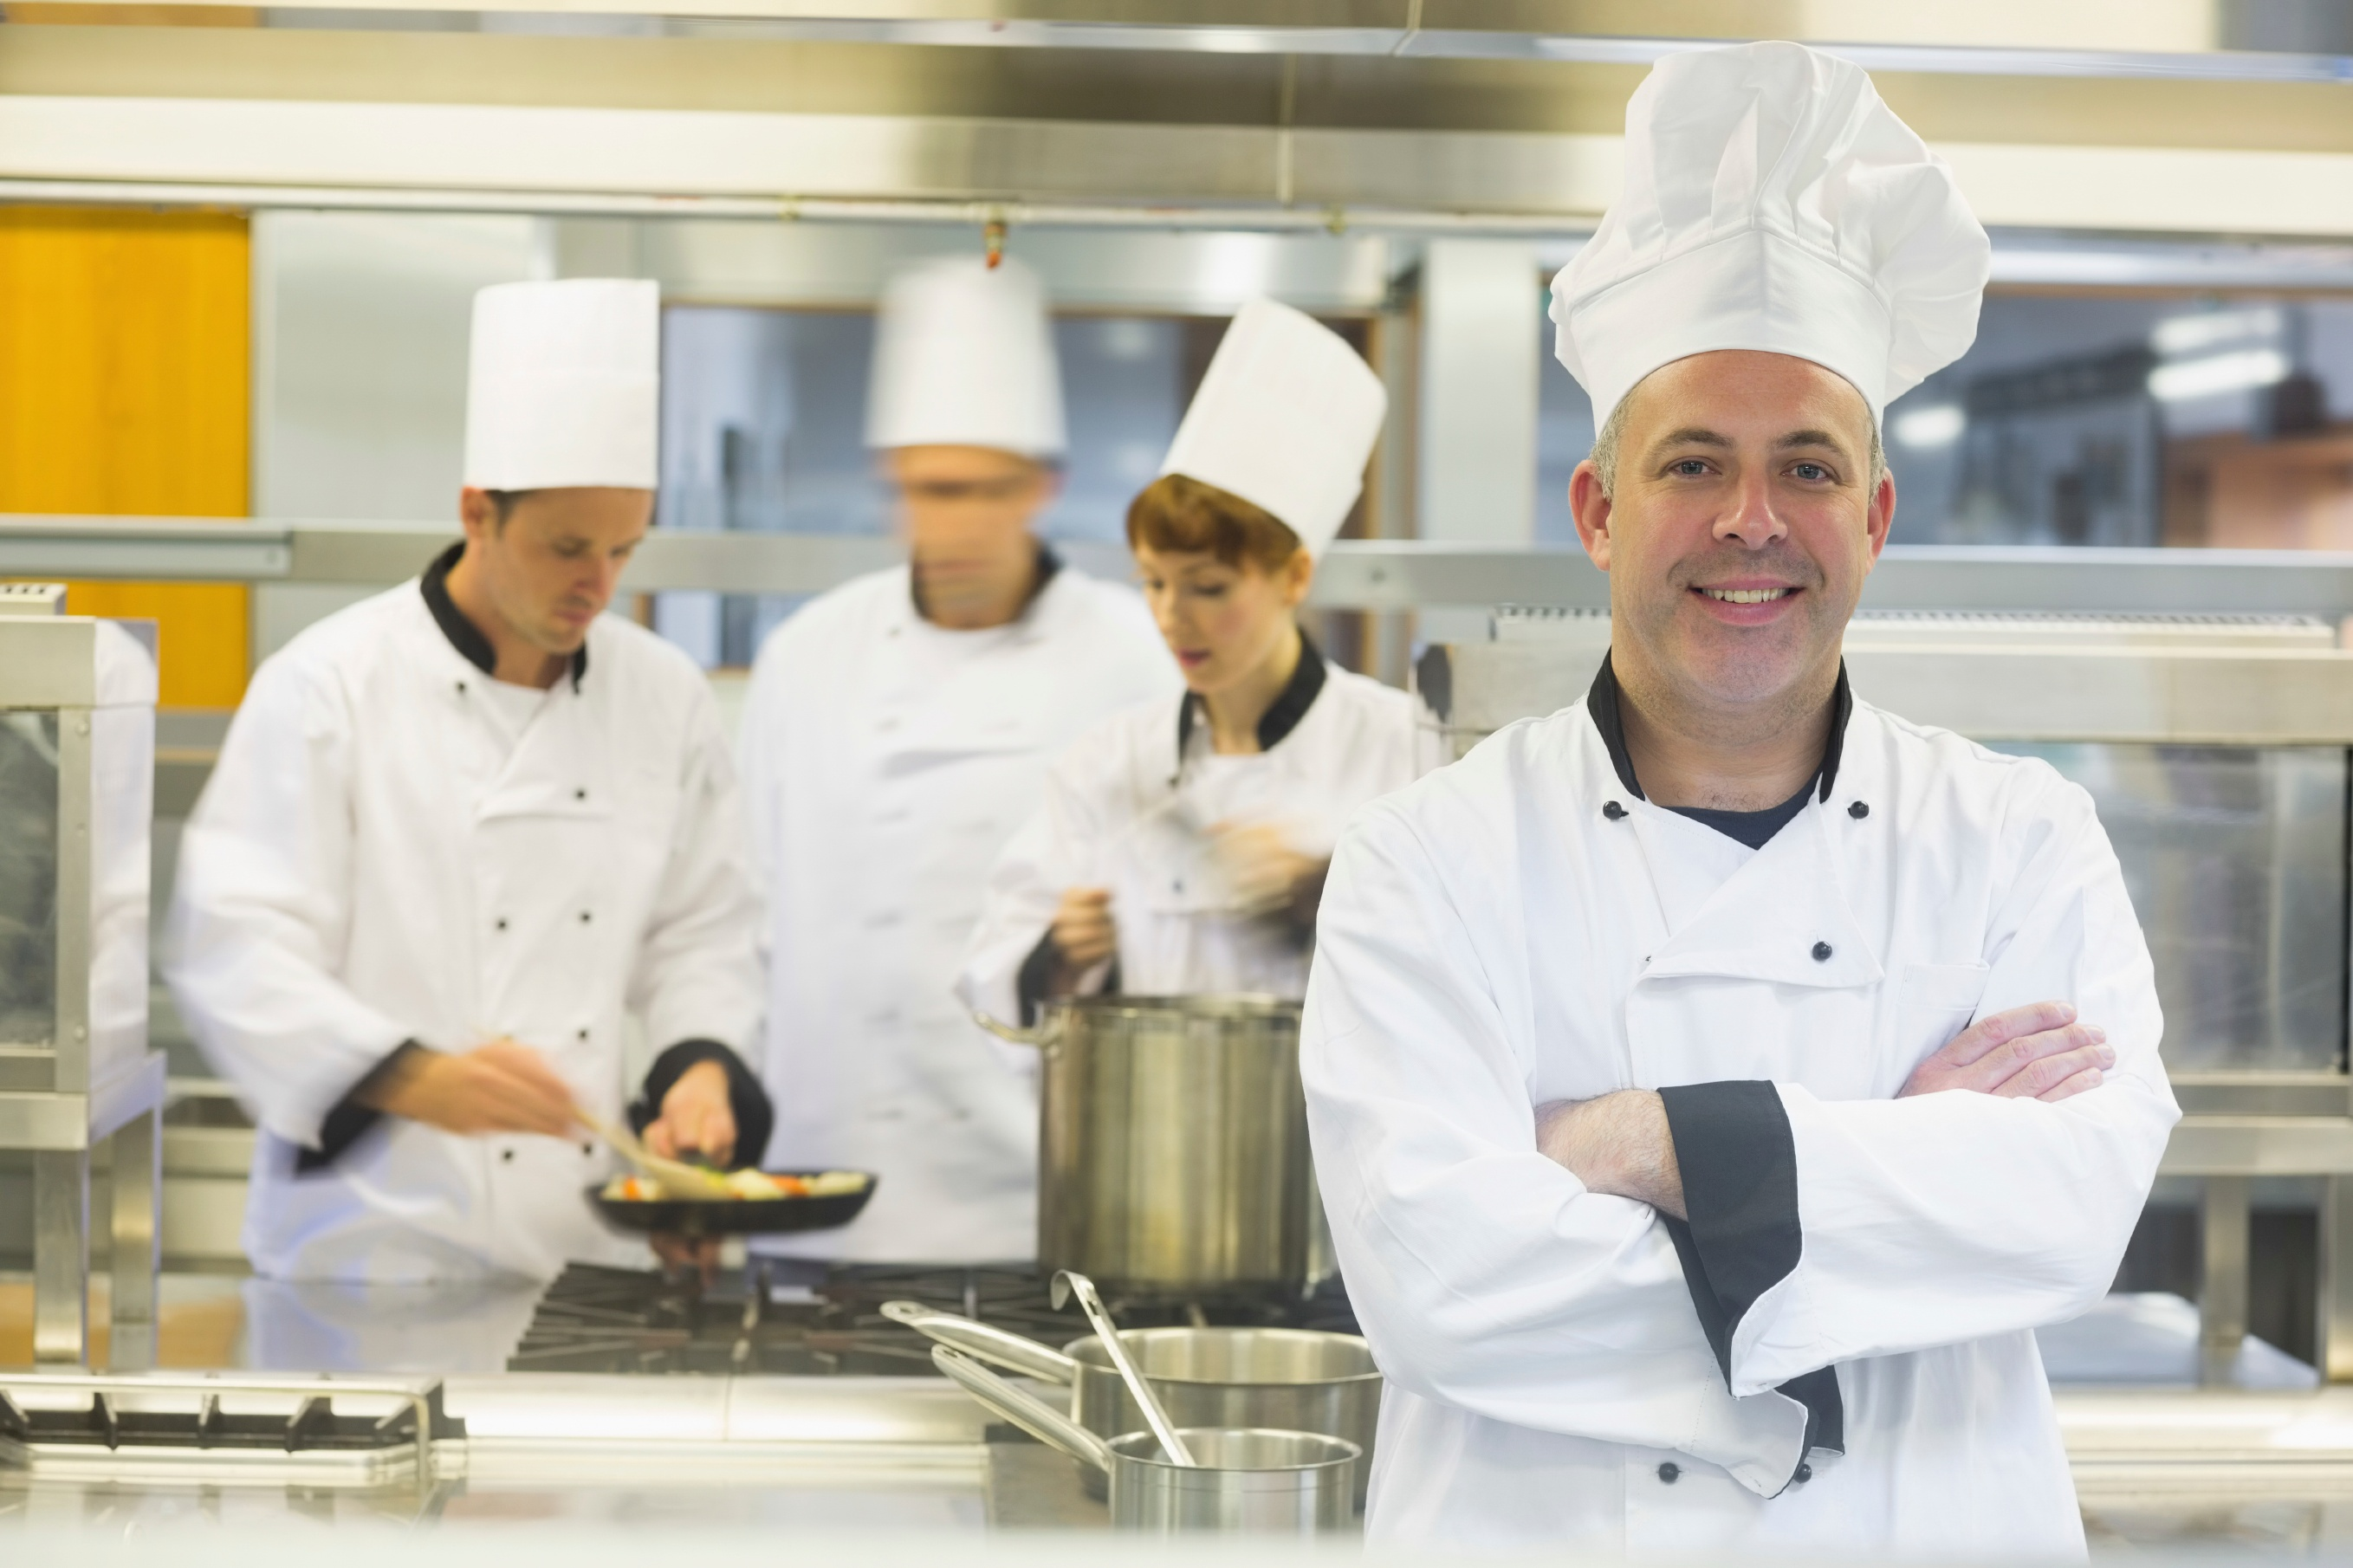 Food Safety and Quality in Chef-Driven Fast Casual